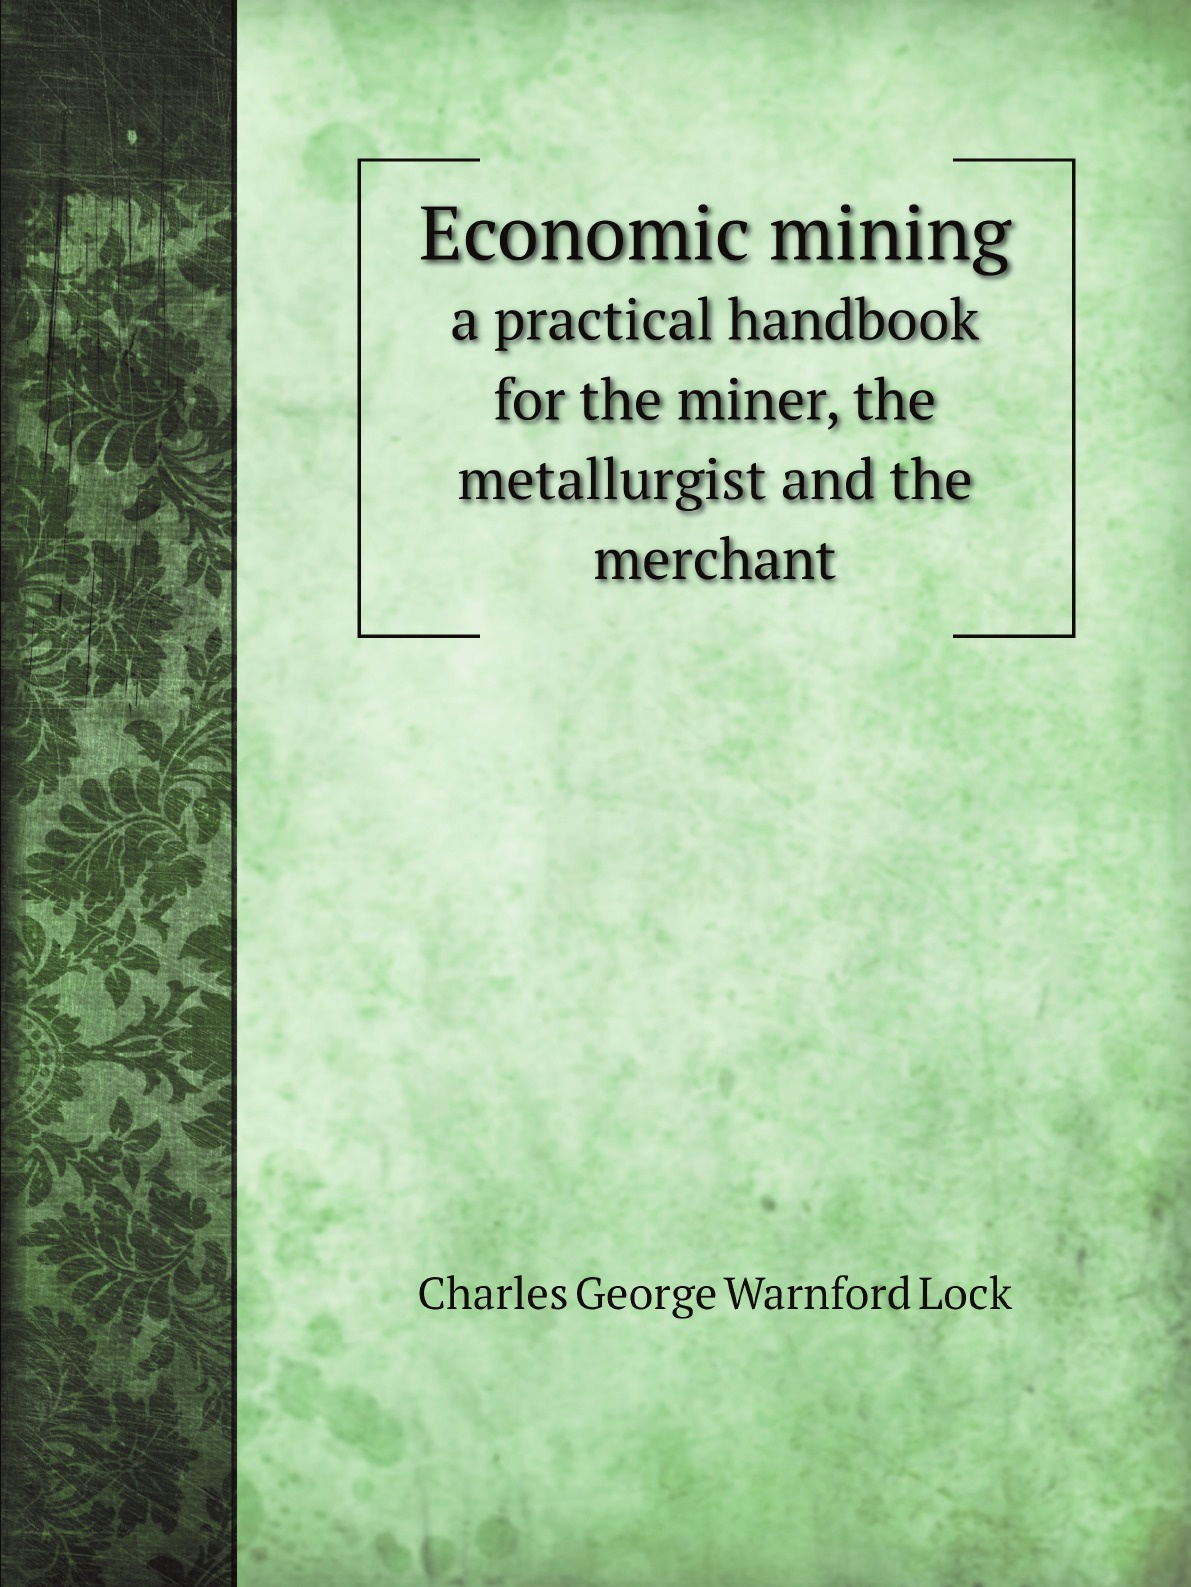 цены Charles George Warnford Lock Economic mining. a practical handbook for the miner, the metallurgist and the merchant